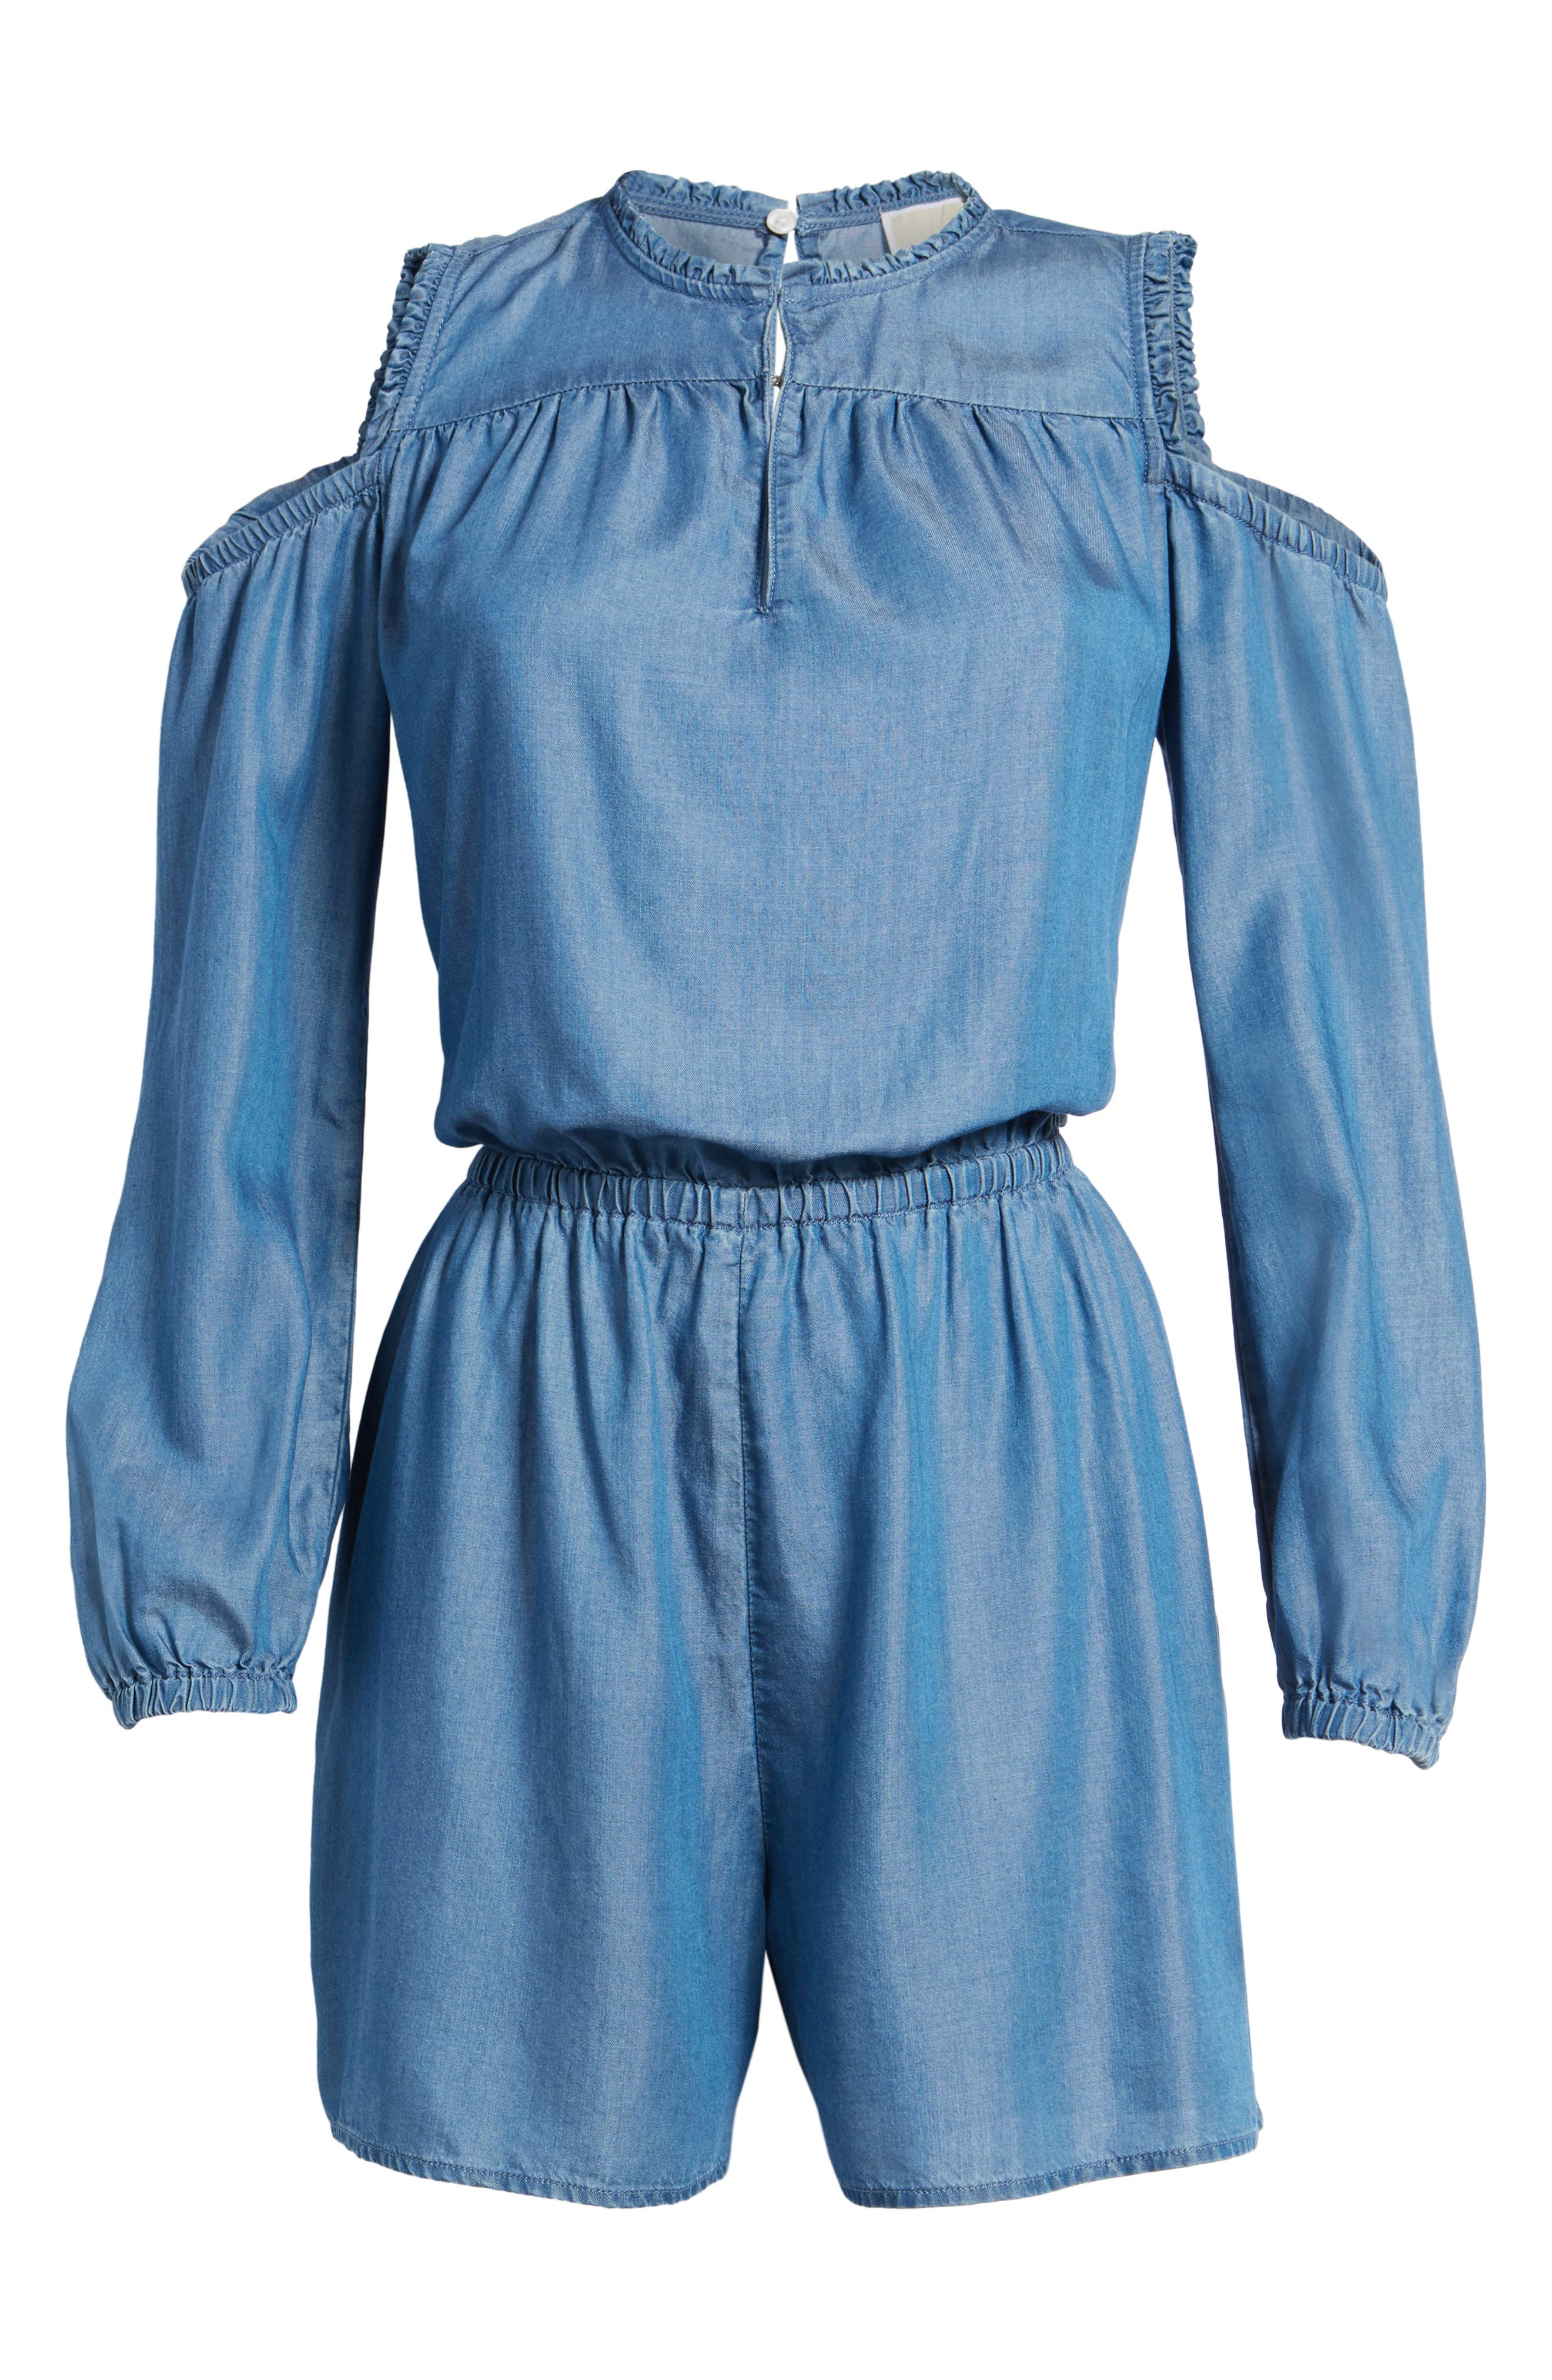 Cold Shoulder Chambray Romper,                             Alternate thumbnail 6, color,                             Light Cadet Wash